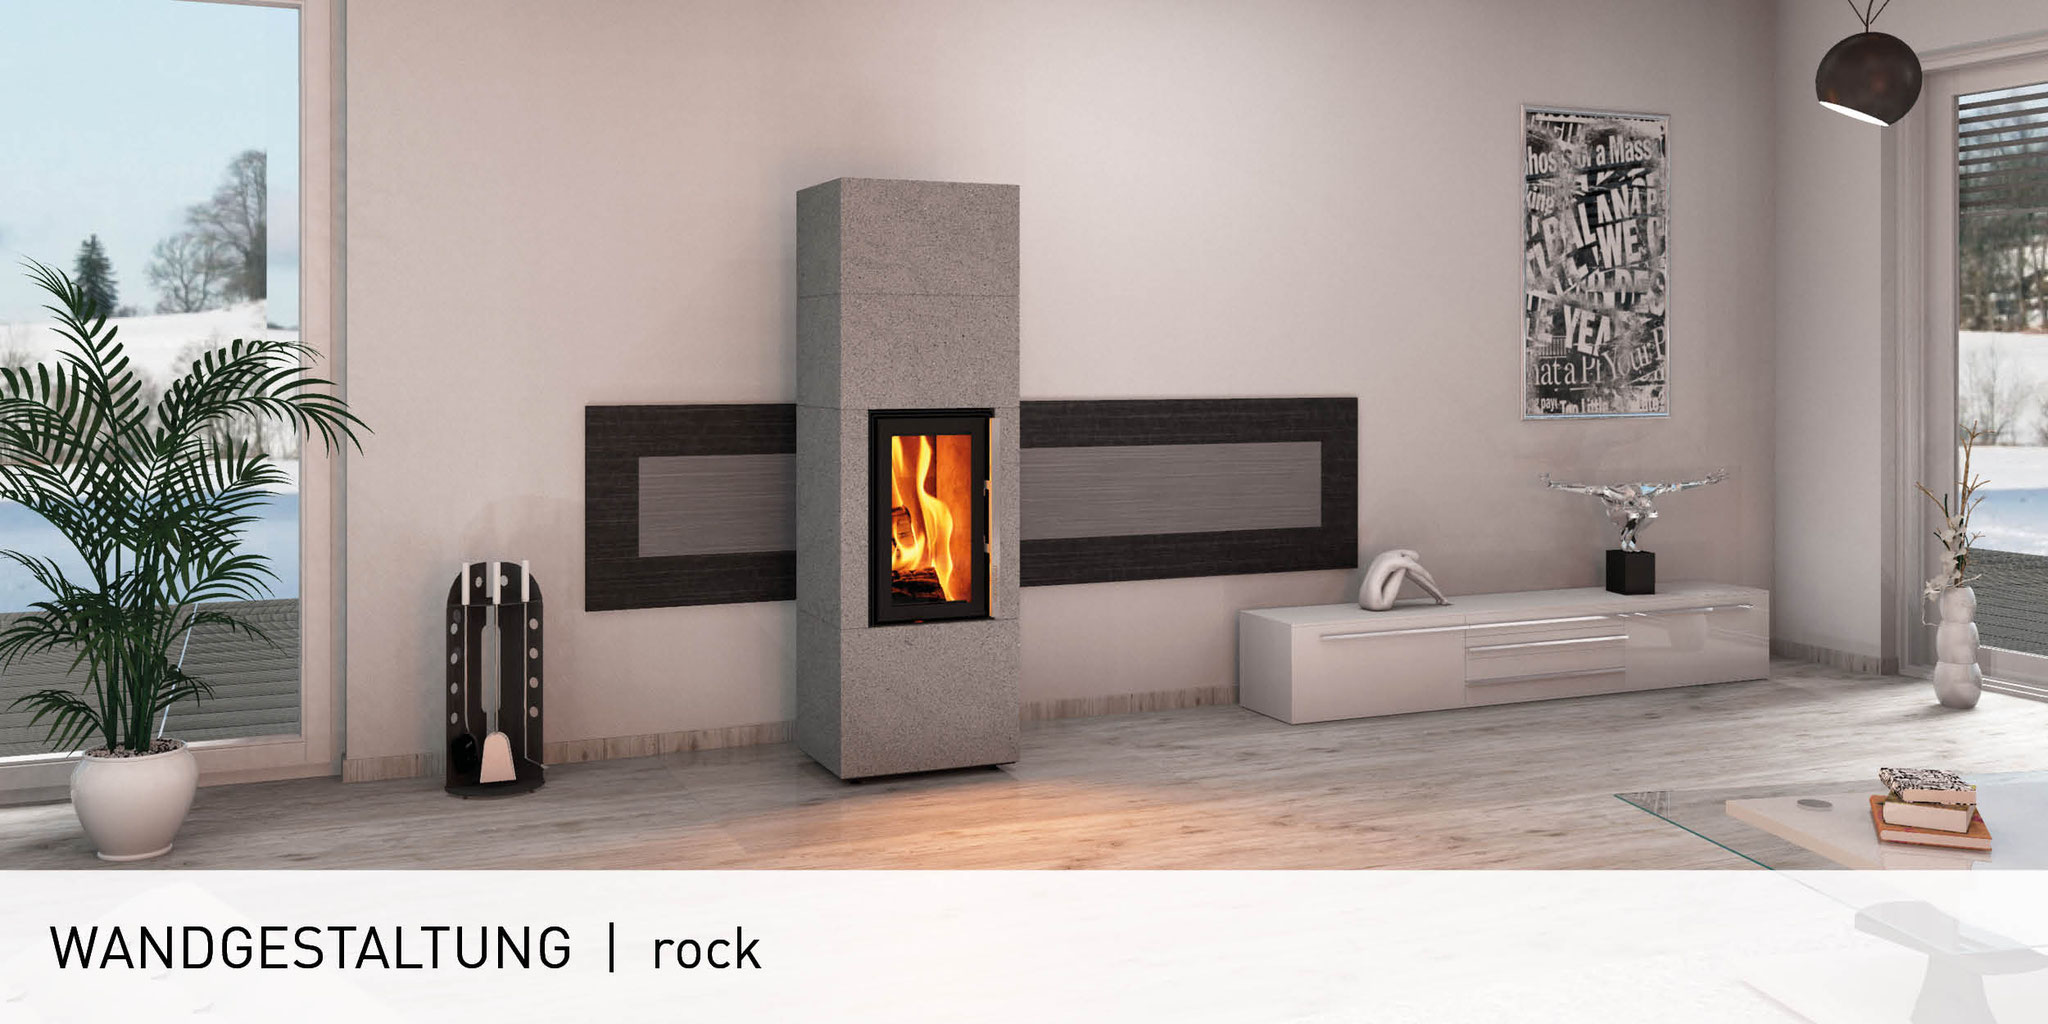 wandgestaltung monolith fire inside naturstein fen natursteinofen speicher kaminofen. Black Bedroom Furniture Sets. Home Design Ideas